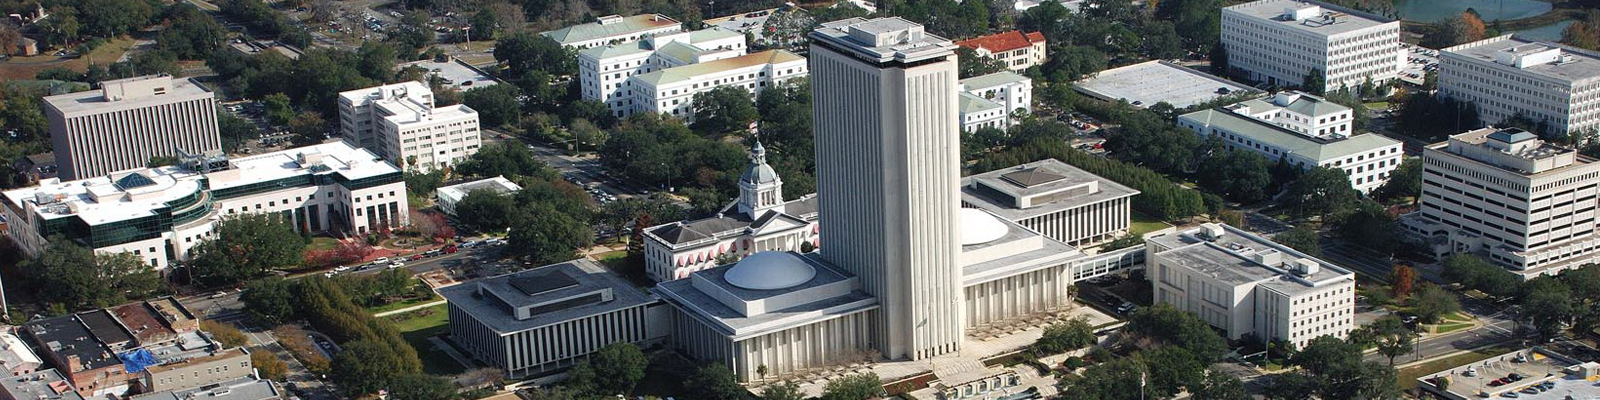 Exterior view image of capital building